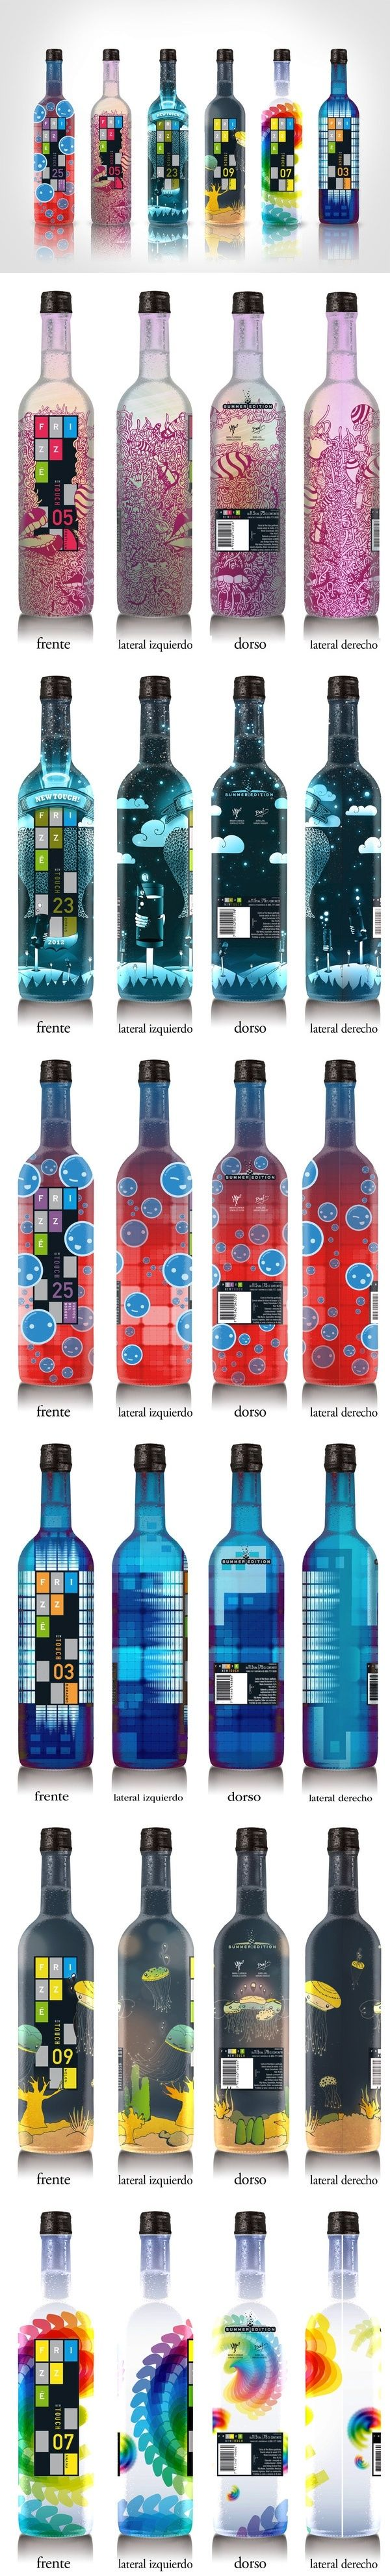 Wine Bottles are one of the most beautifully designed packaging, with their elegant glass bottle shape and cork seal. The labels on Wine Bottles have usually got a lot of planning behind them. Many important